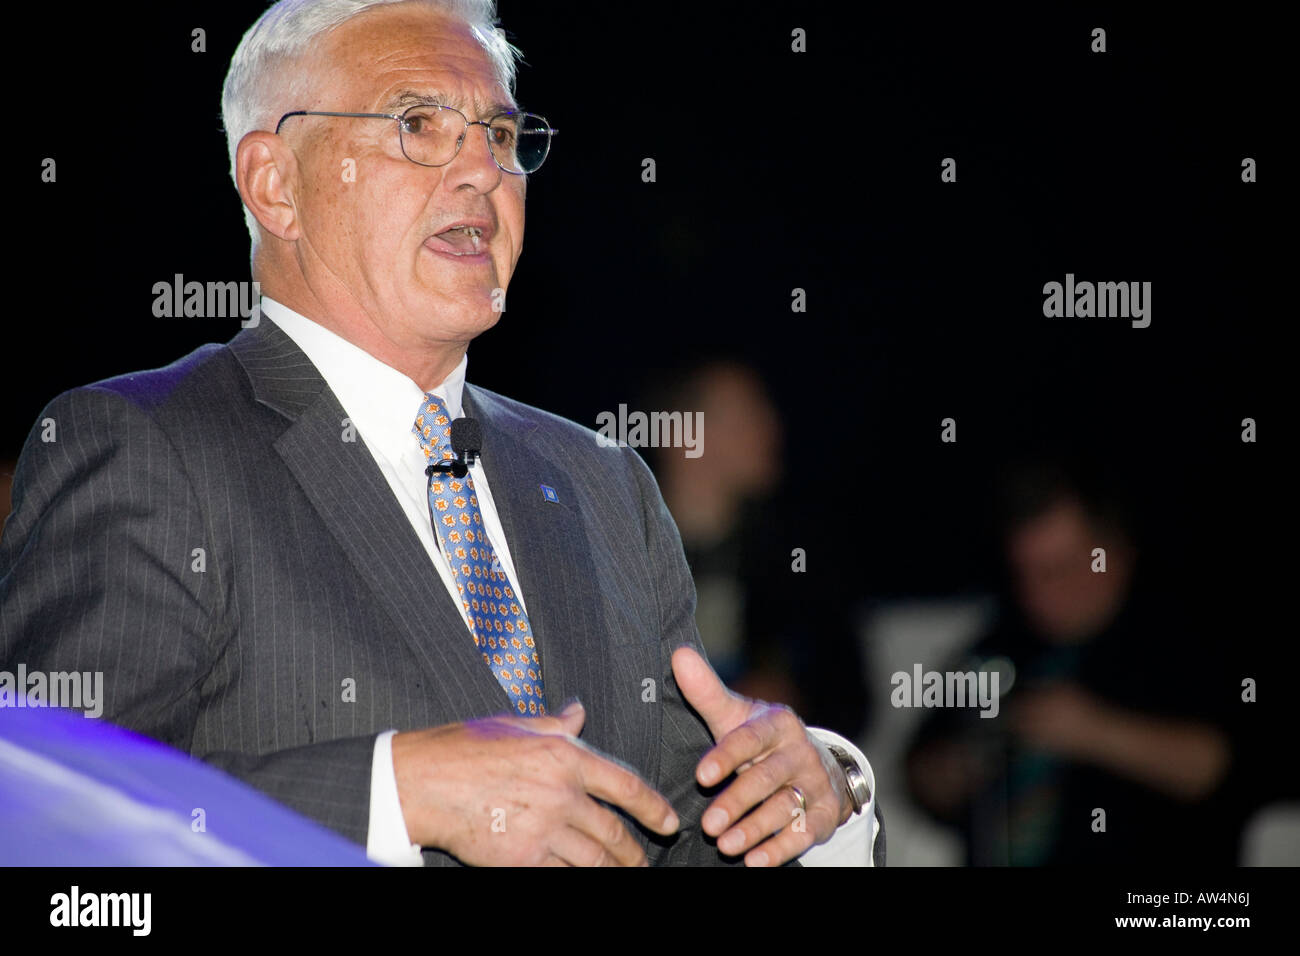 Bob Lutz (Vice Chairman of GM) speaks at the launch of the Saab 9-X BioHybrid concept. - Stock Image